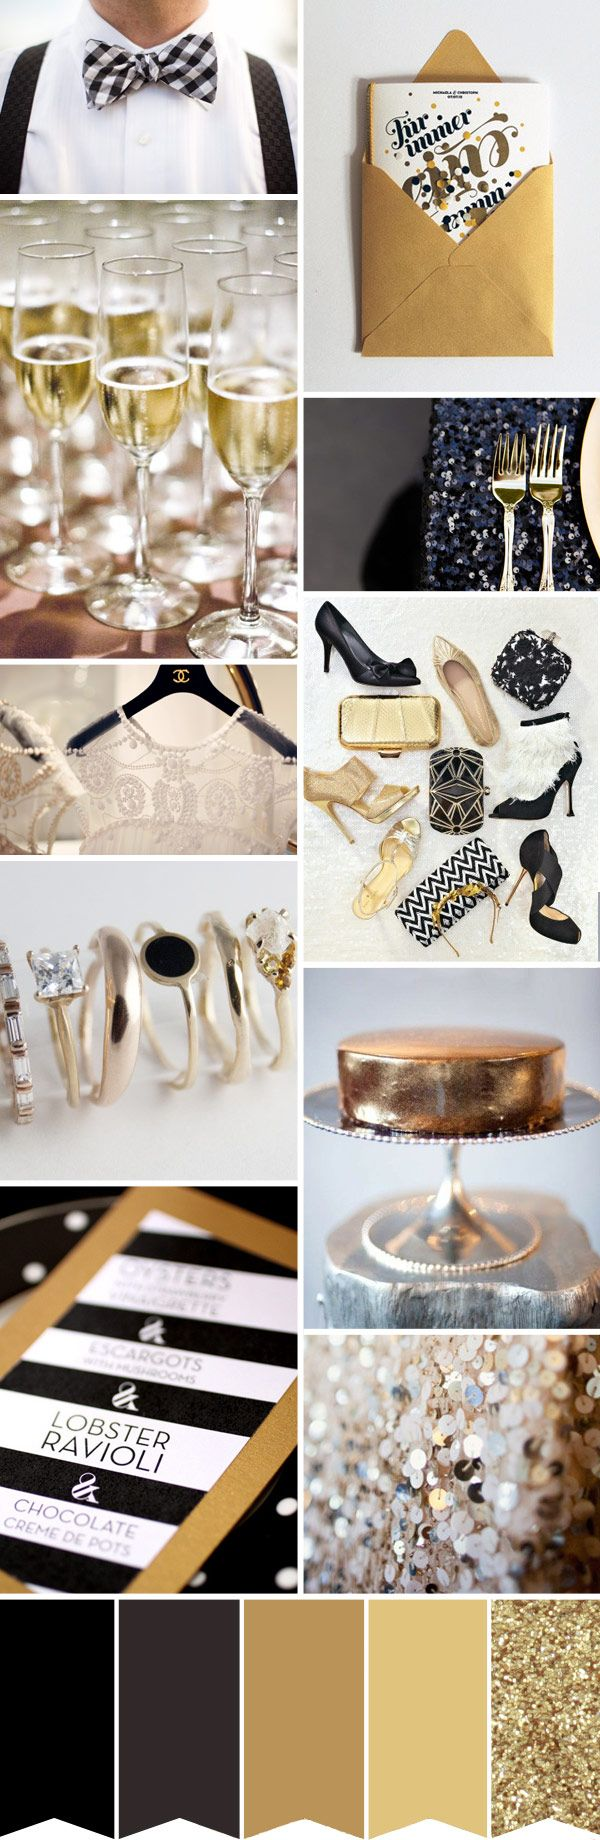 Black Tie Wedding - patterns can be used effectively, stripes, check, zebra, chevron to add interest, depth and texture to the decor